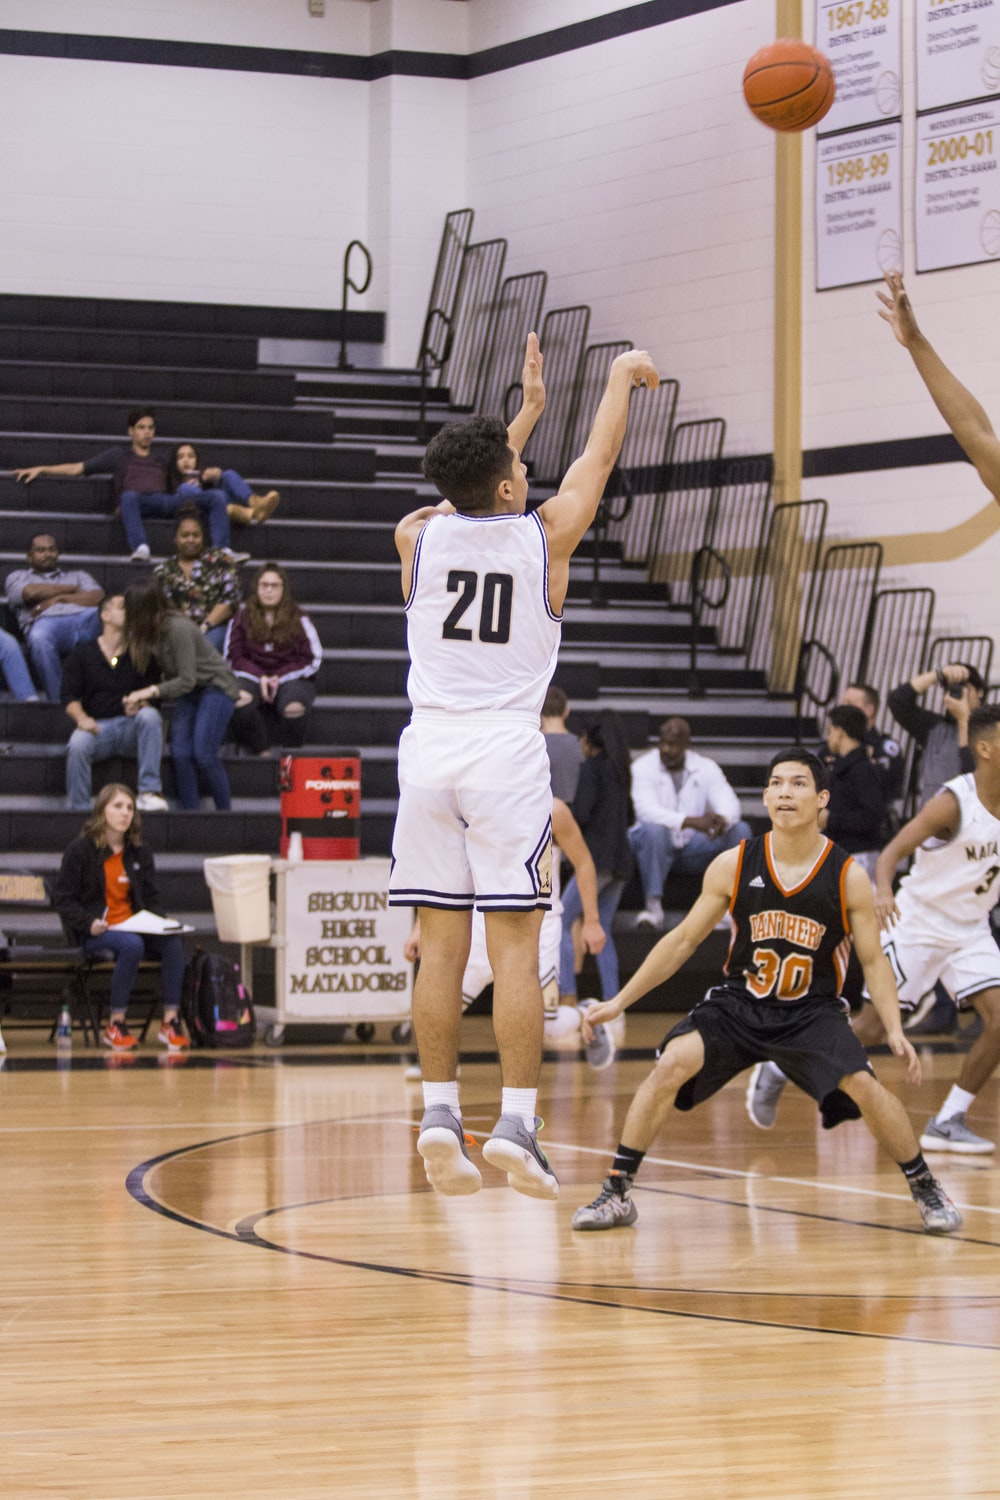 man in white and black number 20 jersey shirt shooting a basketball